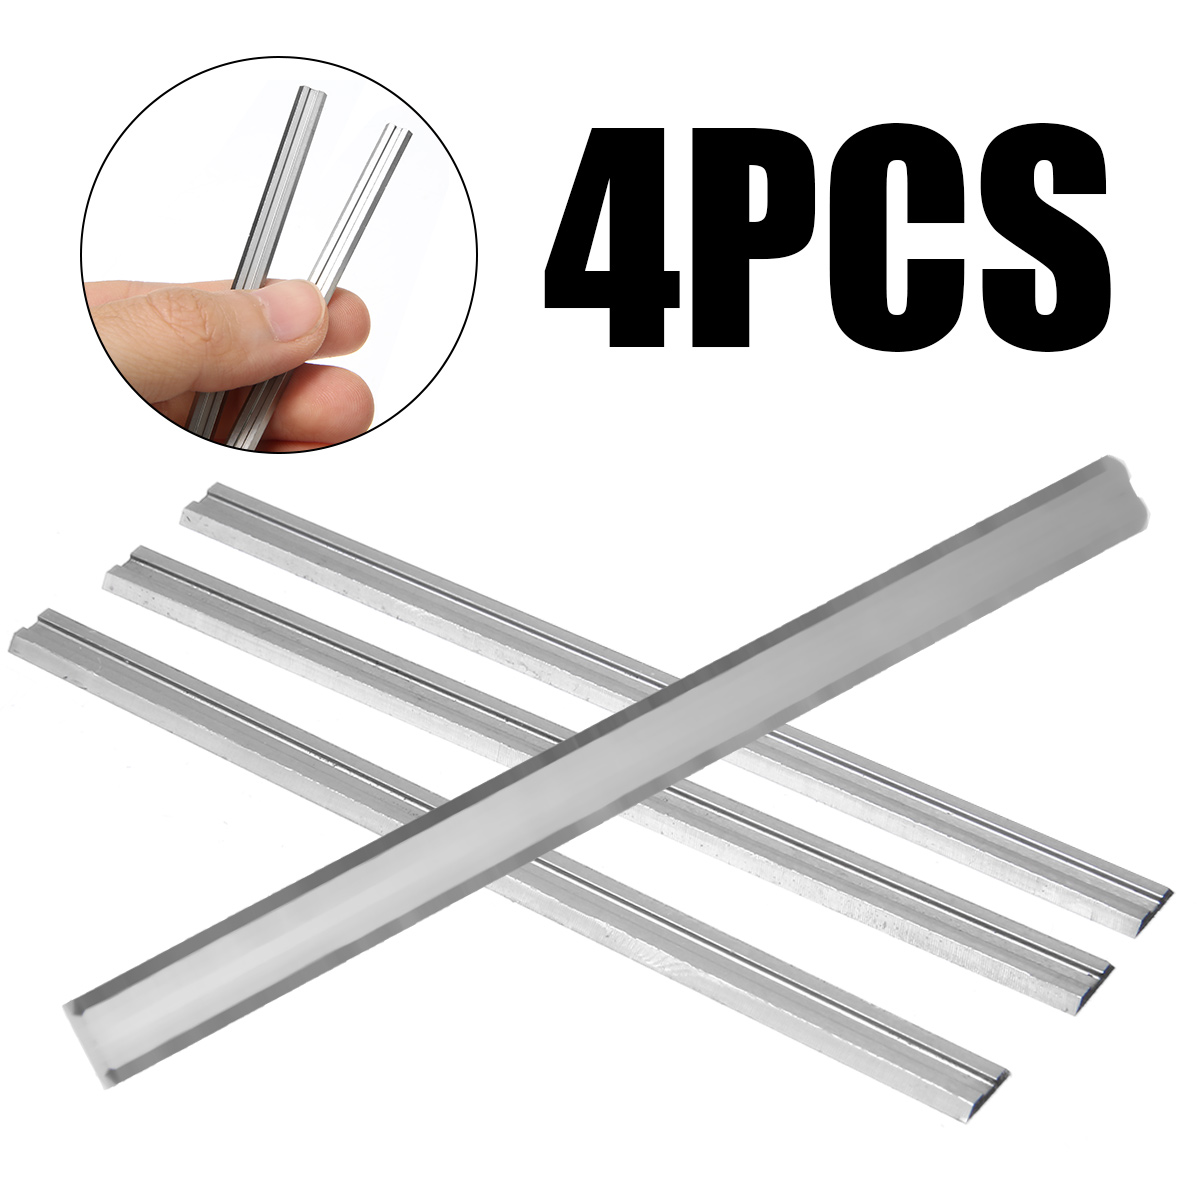 4pcs Carbide  82*5.5*1.1mm Planer Knife 82mm For Bosch PHO 25-82 / PHO 200 / PHO 16-82 / B34 HM Planer Blades Hot Sale